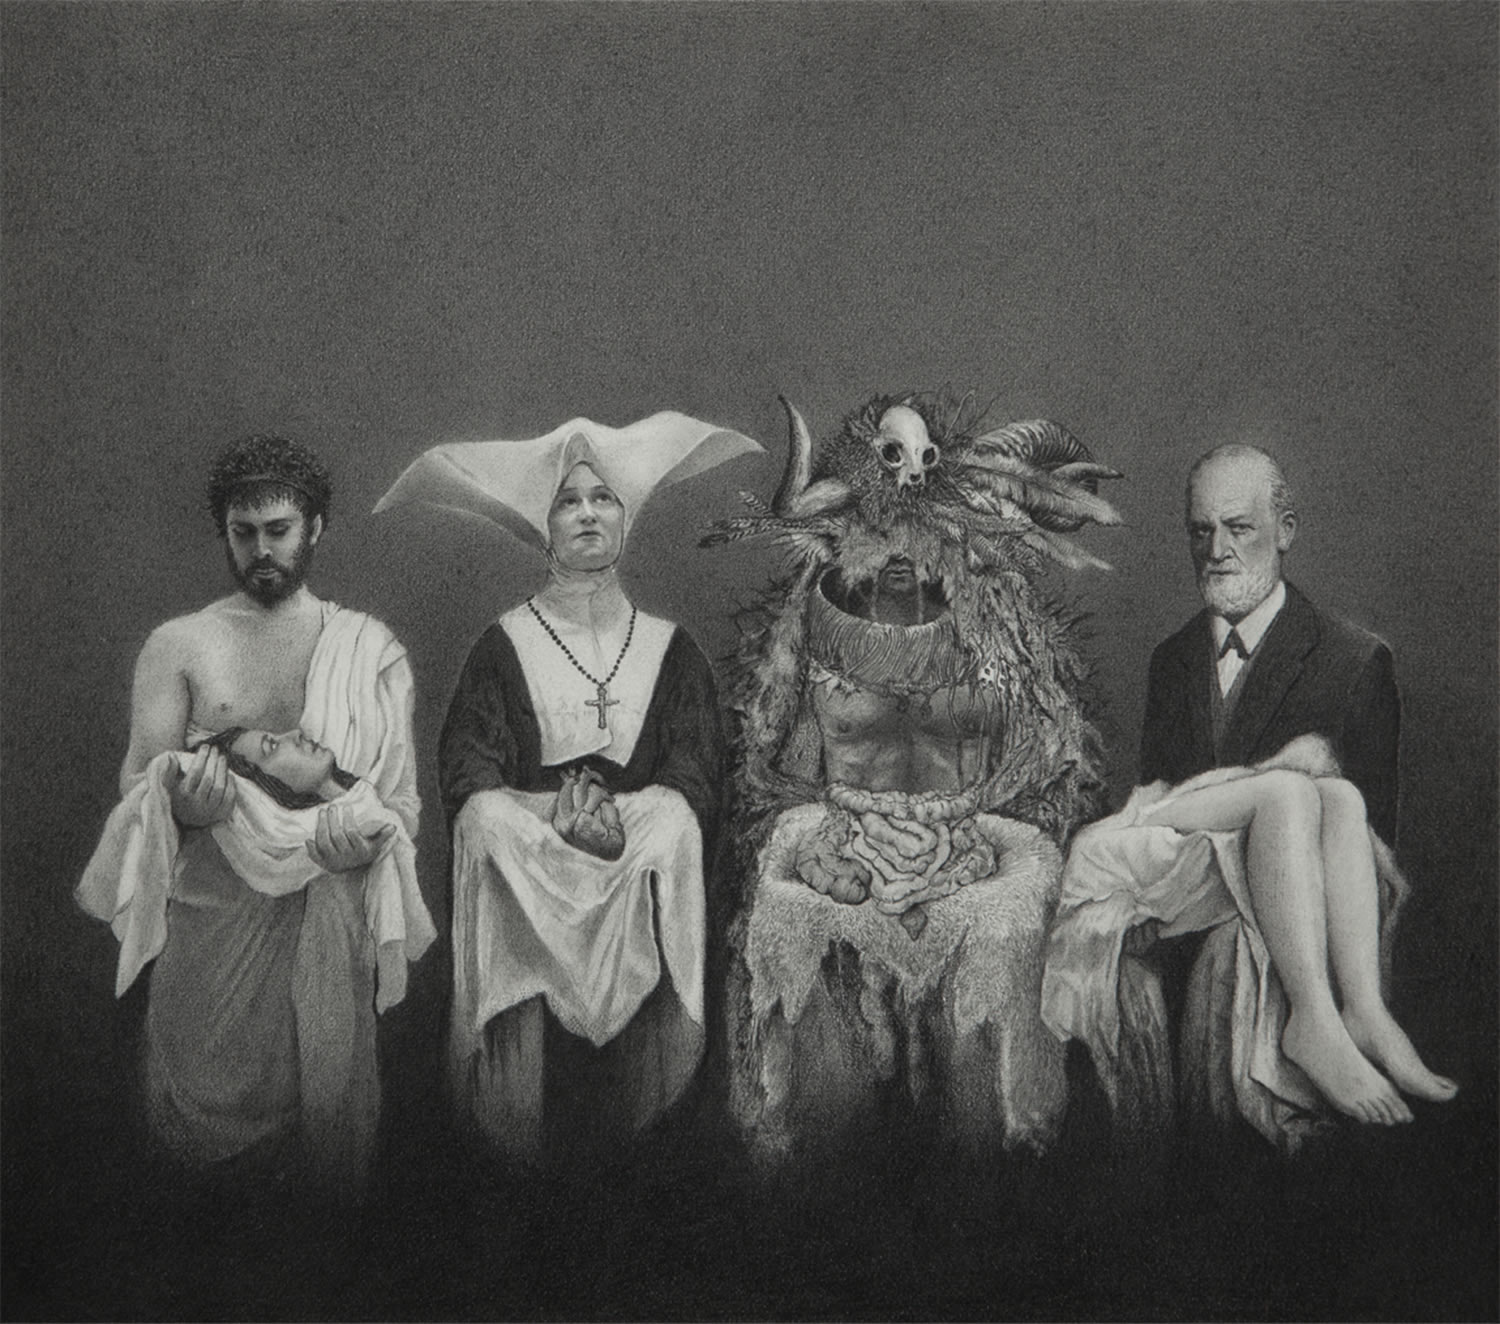 four figures holding innards by alejandro garcia restrepo